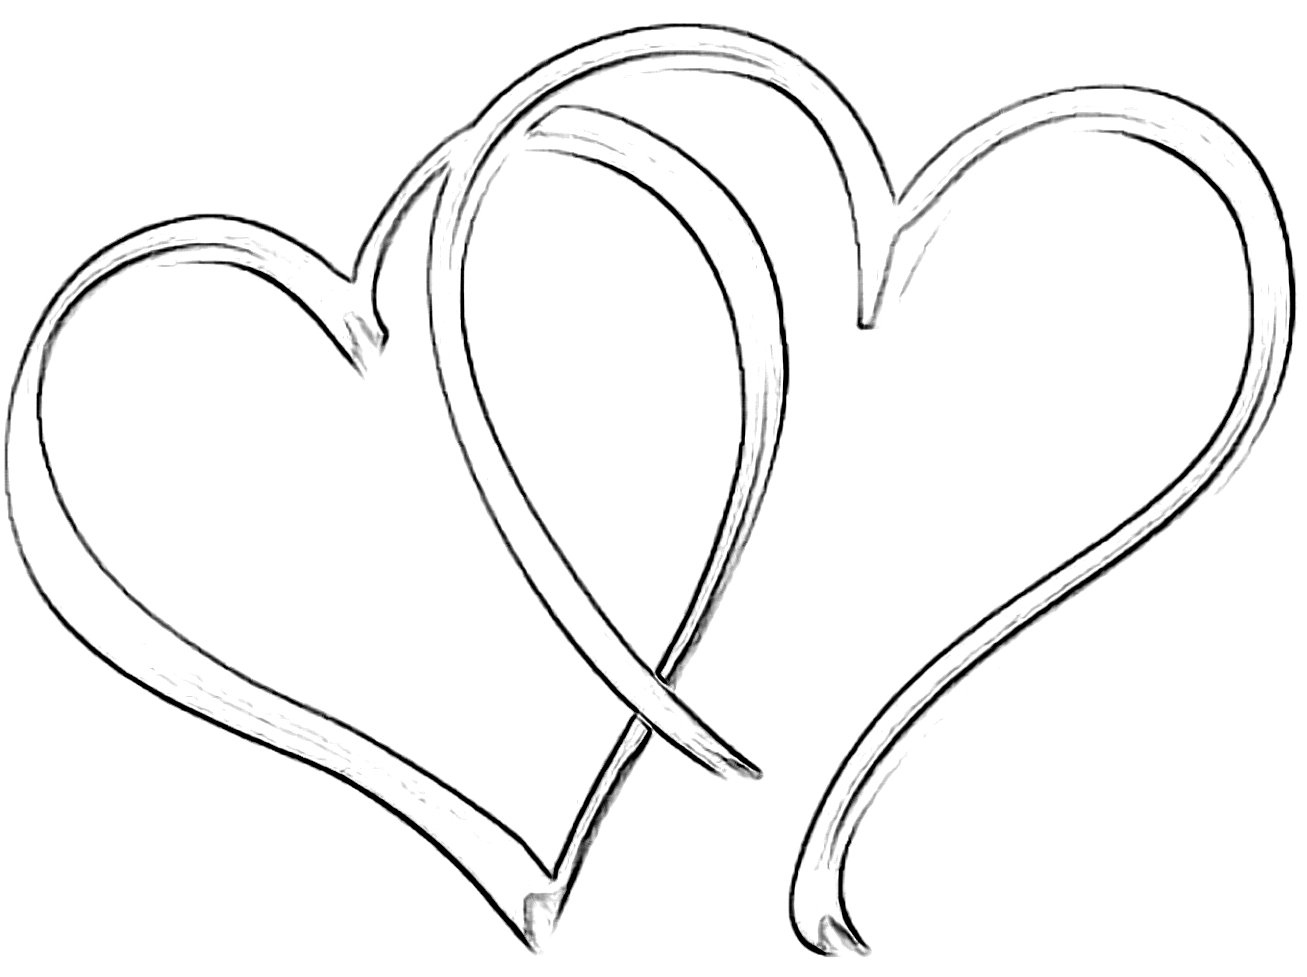 1307x977 Heart Shape Images Drawing Drawing Of A Heart Shape Heart Shapes